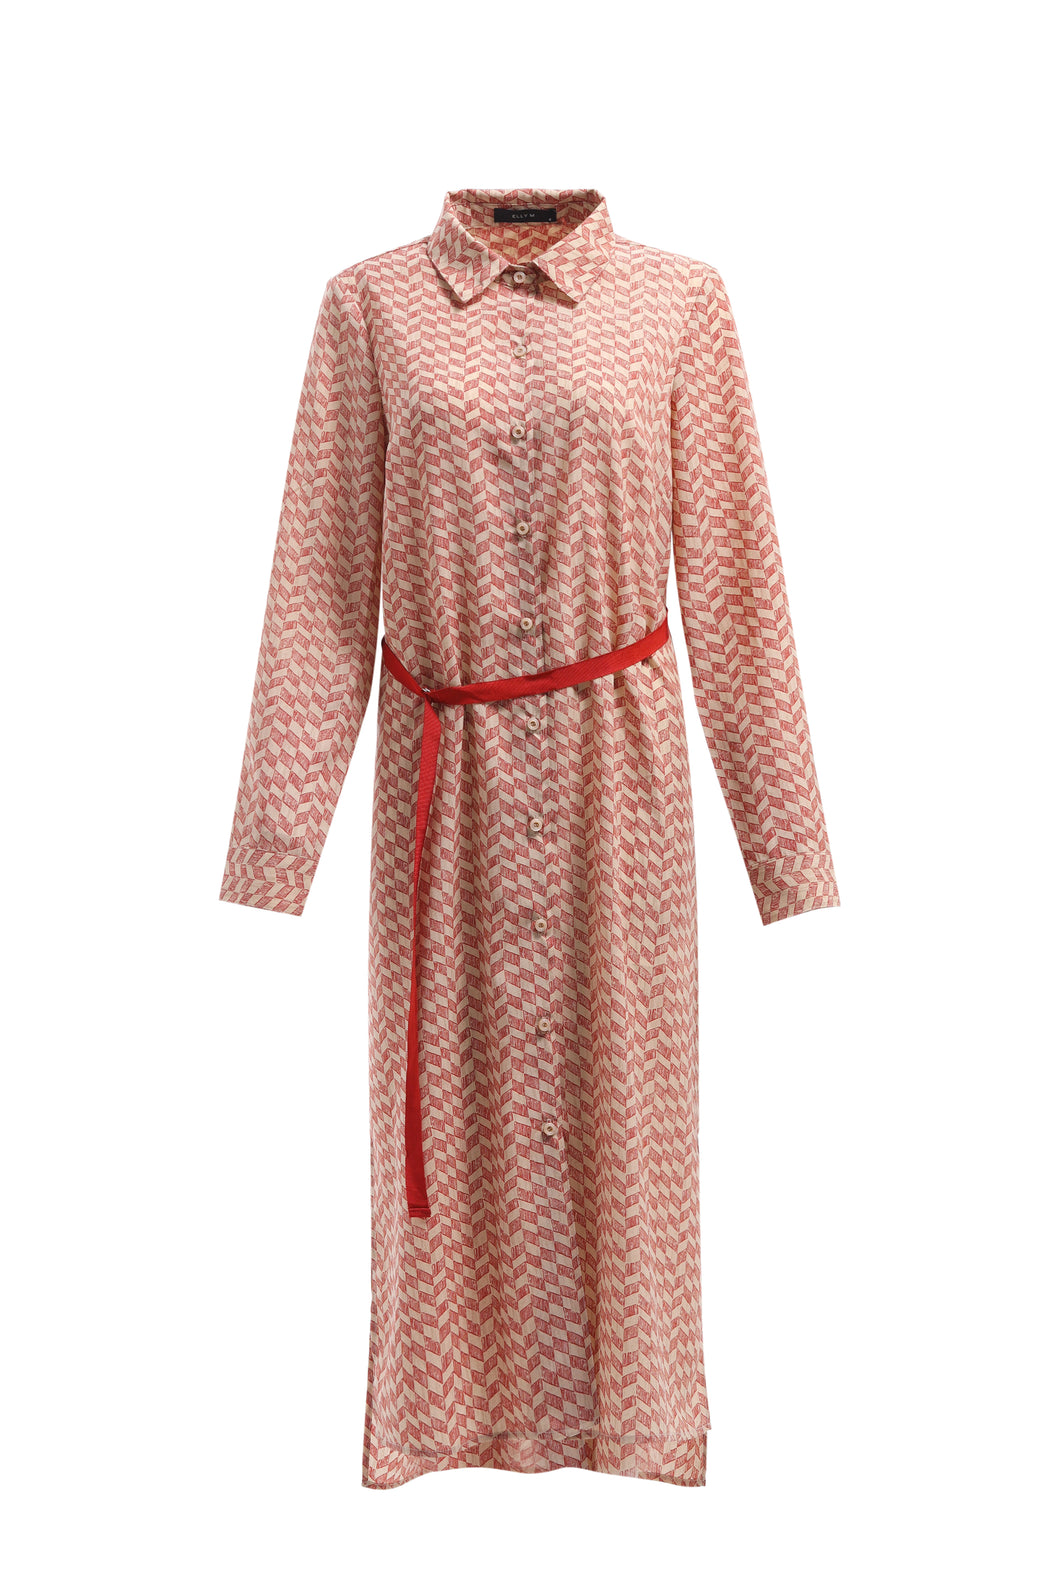 Rory Shirt Dress - ELLY M Australia